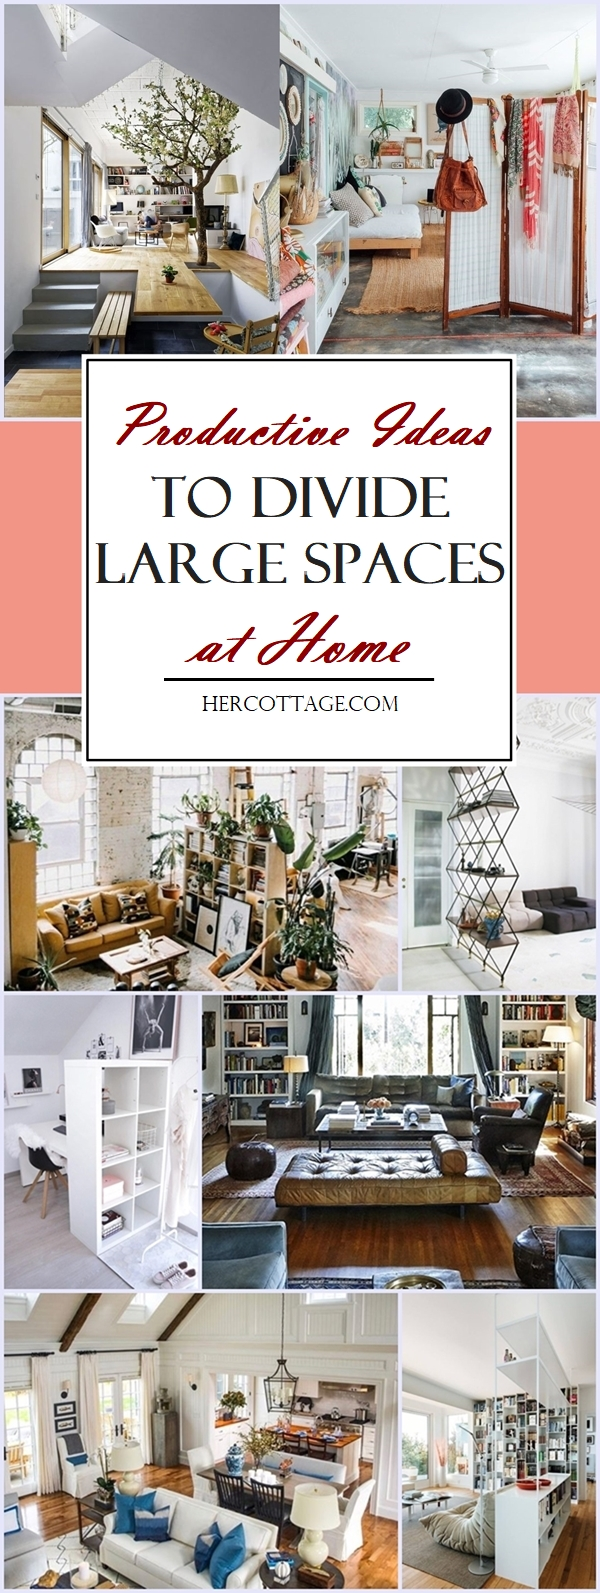 productive-ideas-to-divide-large-spaces-at-home